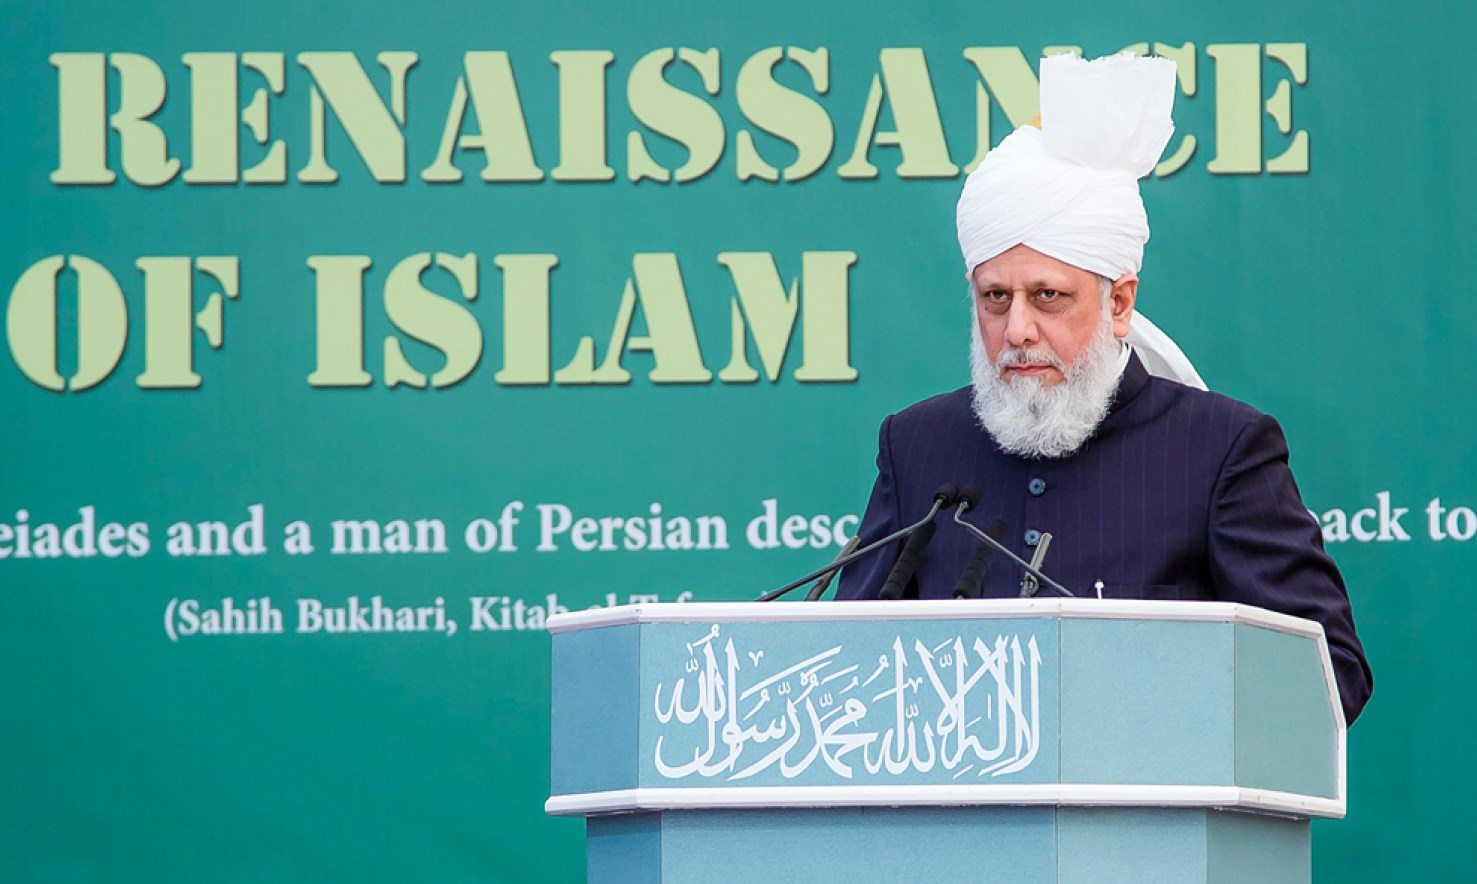 37th Lajna Imaillah UK concludes with address by Head of Ahmadiyya Muslim Community